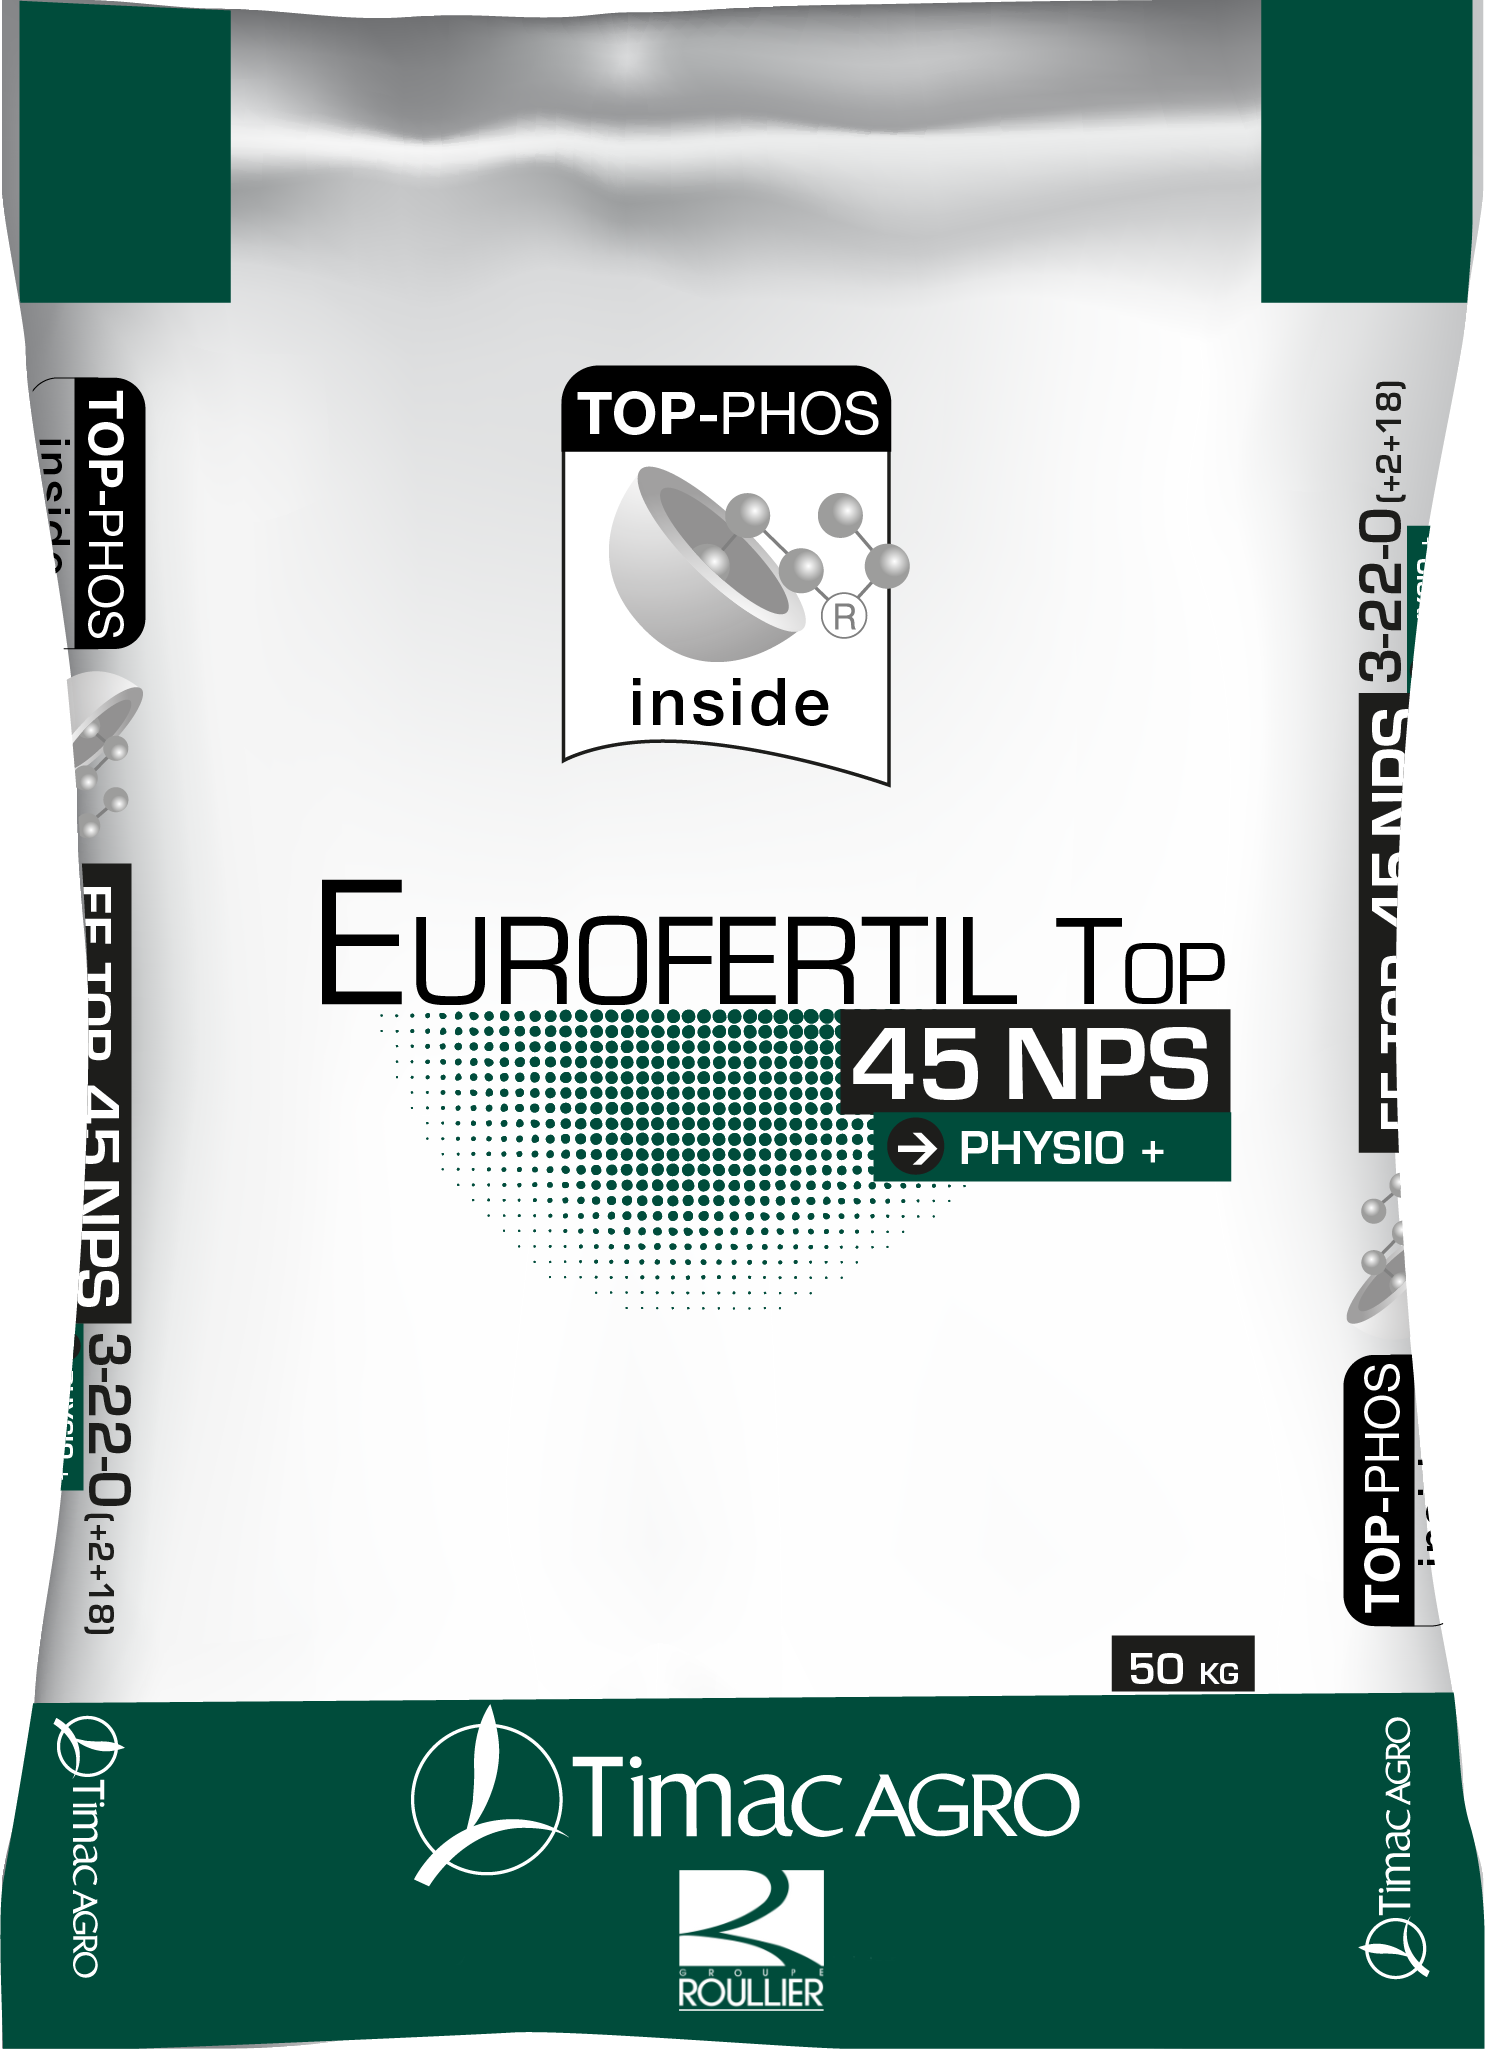 Eurofertil TOP 45